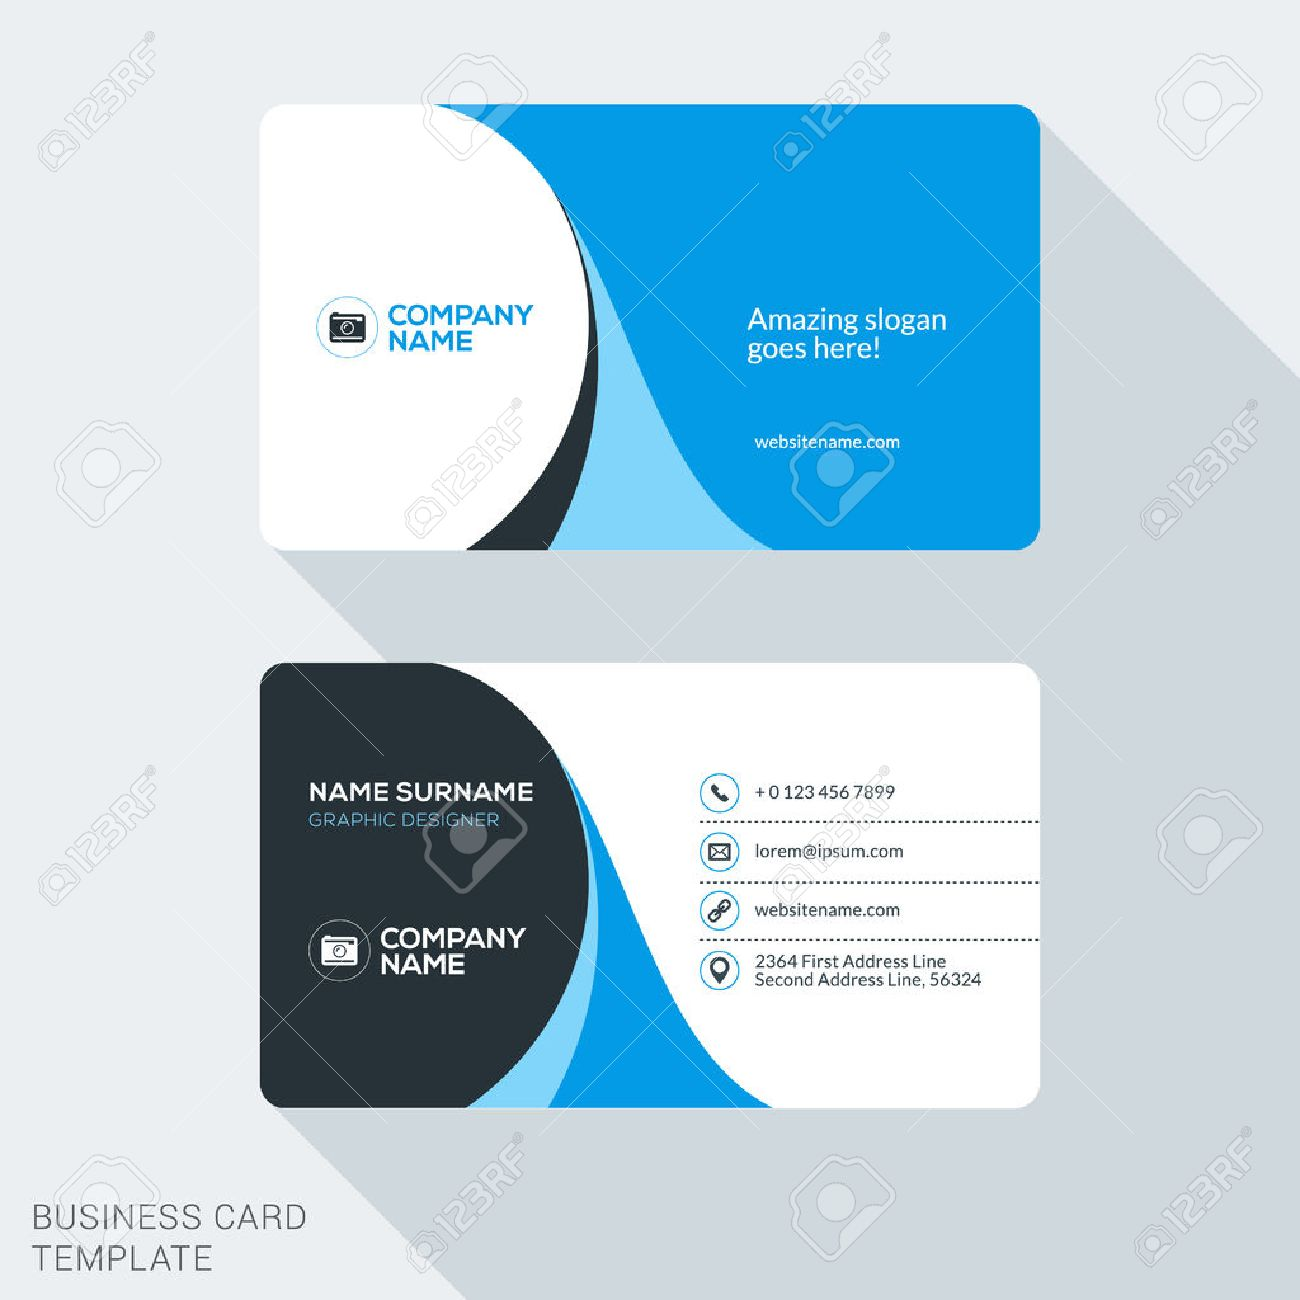 Creative and Clean Corporate Business Card Template. Flat Design Vector Illustration. Stationery Design - 52213772